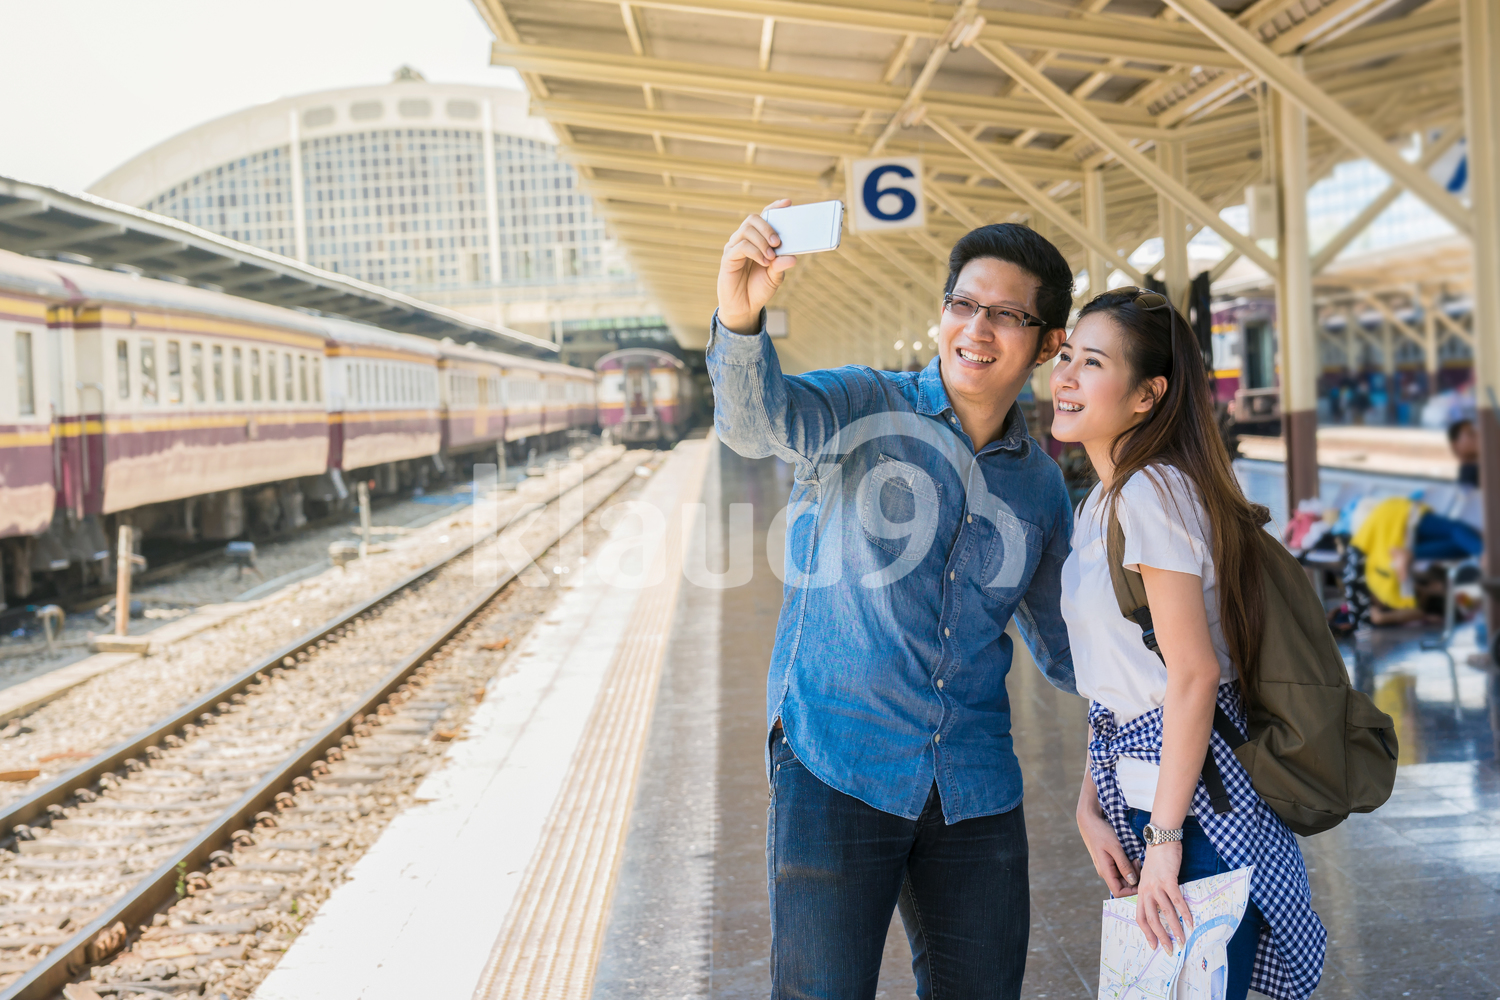 Couple taking selfie photo at the train station